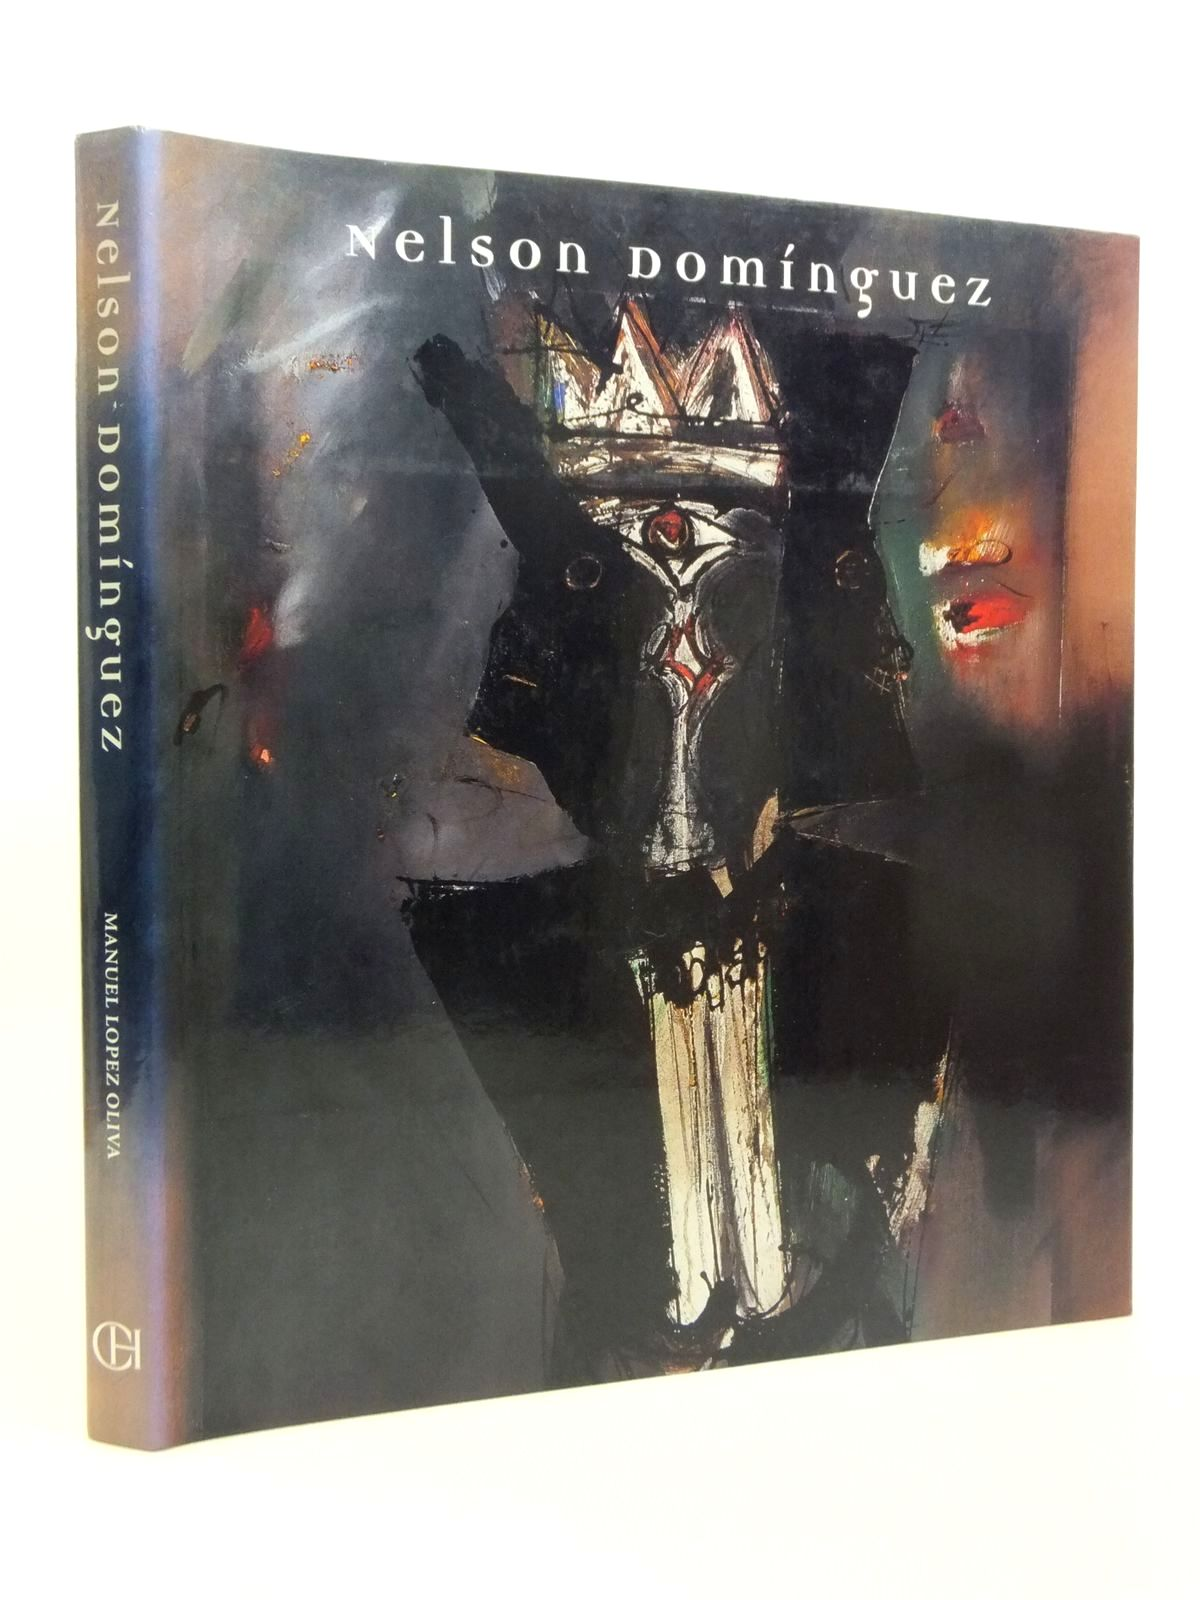 Photo of NELSON DOMINGUEZ written by Oliva, Manuel Lopez published by Craftsman House (STOCK CODE: 1812145)  for sale by Stella & Rose's Books